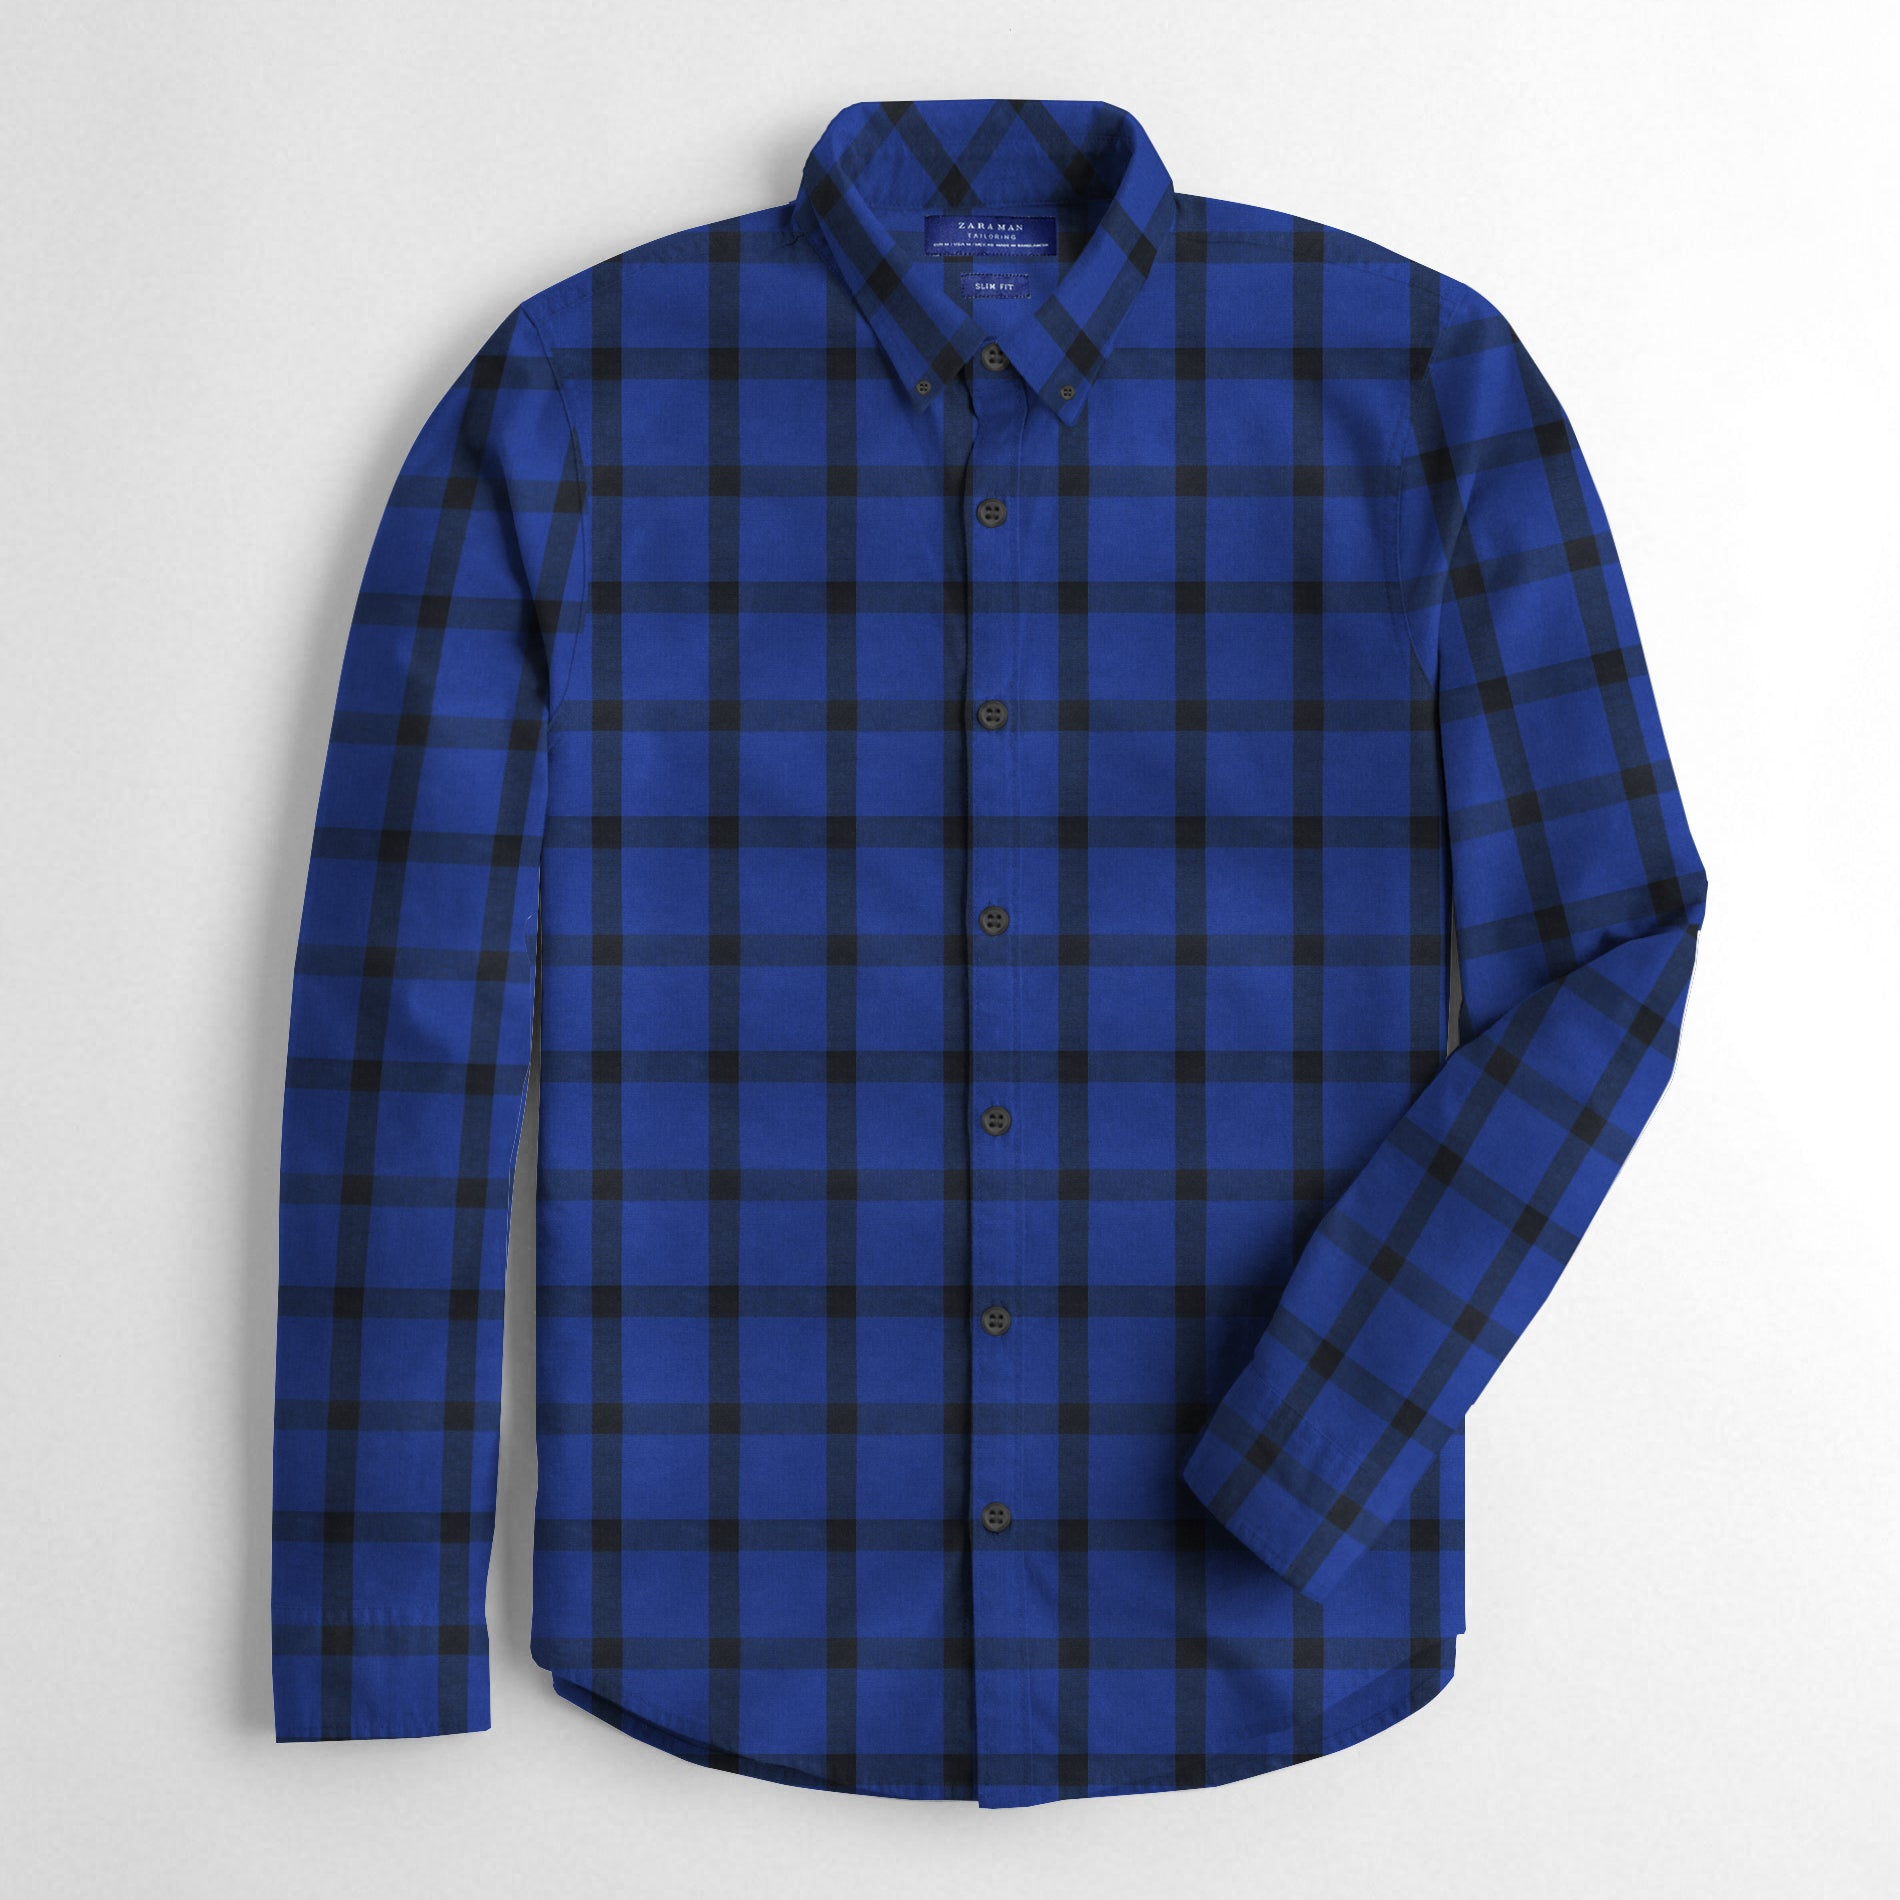 ZM Premium Slim Fit Casual Shirt For Men-Dark Blue Check-BE12533